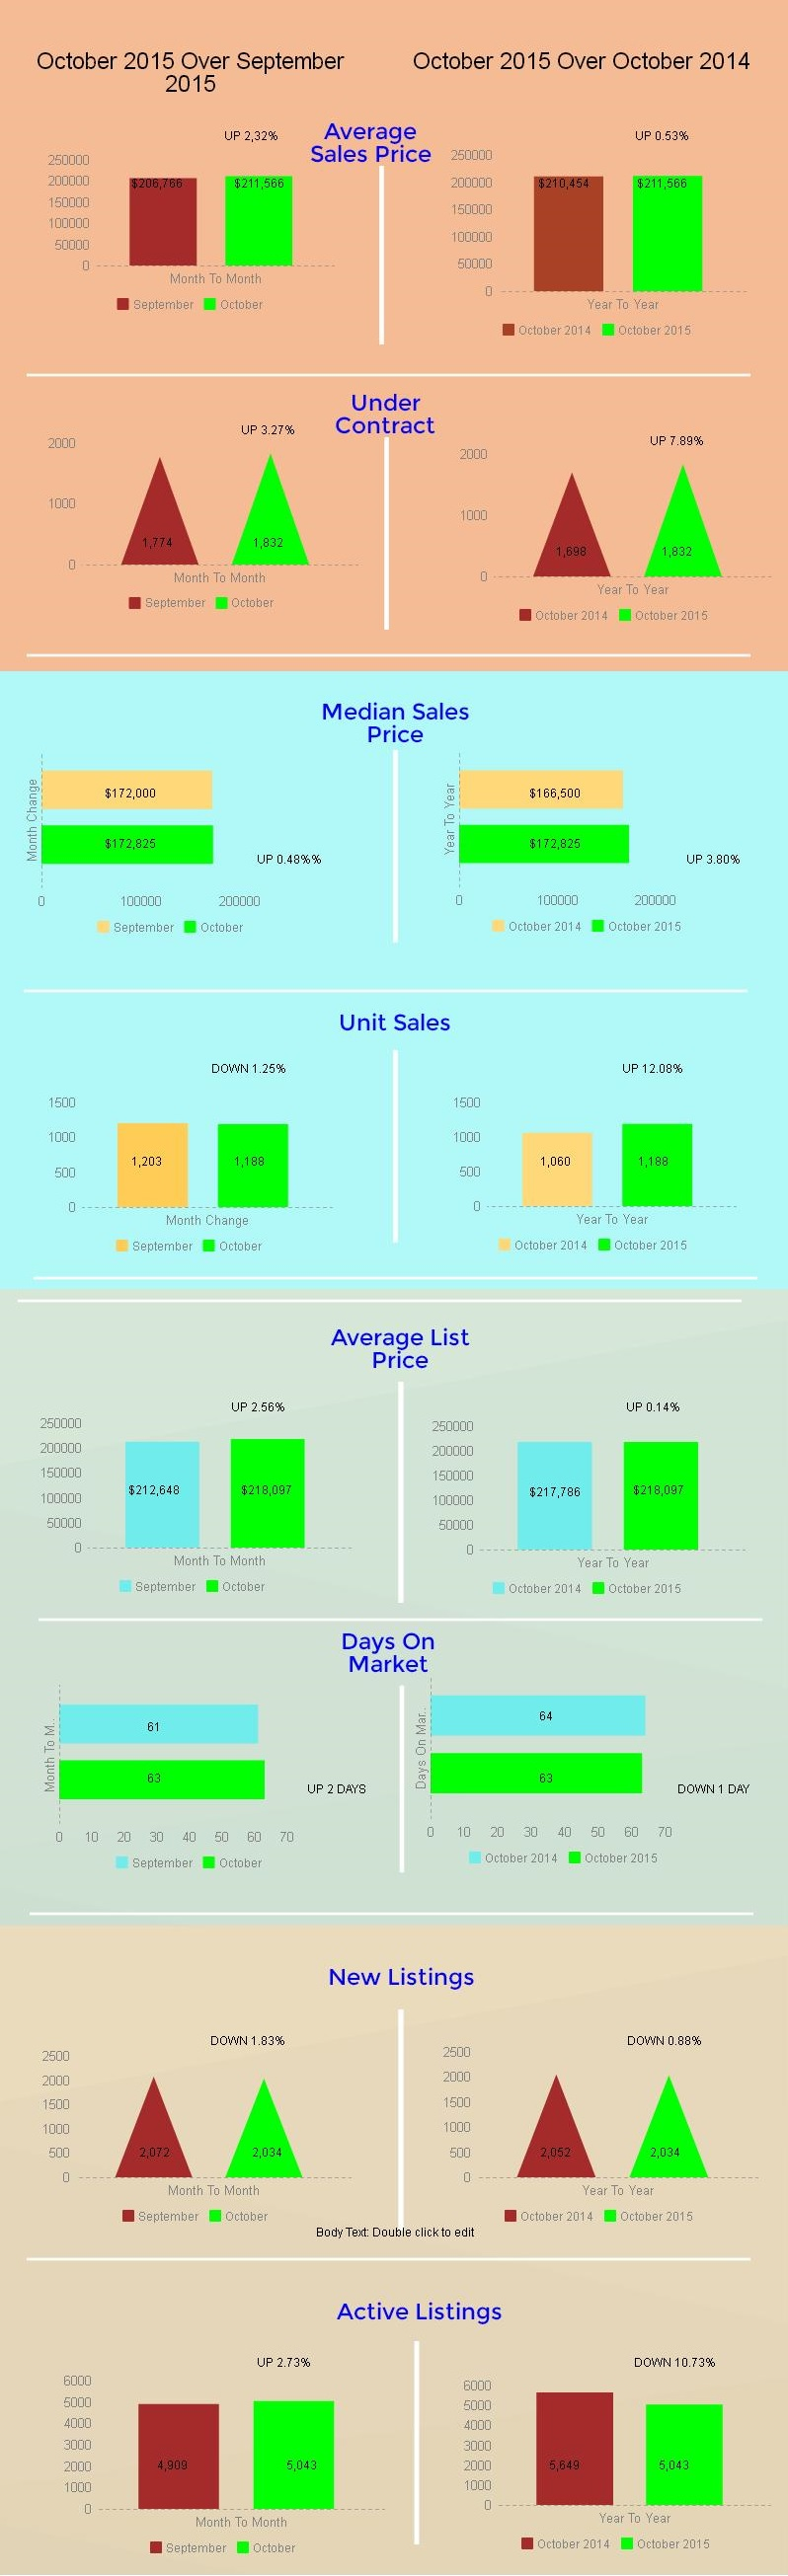 Tucson Housing Market October 2015